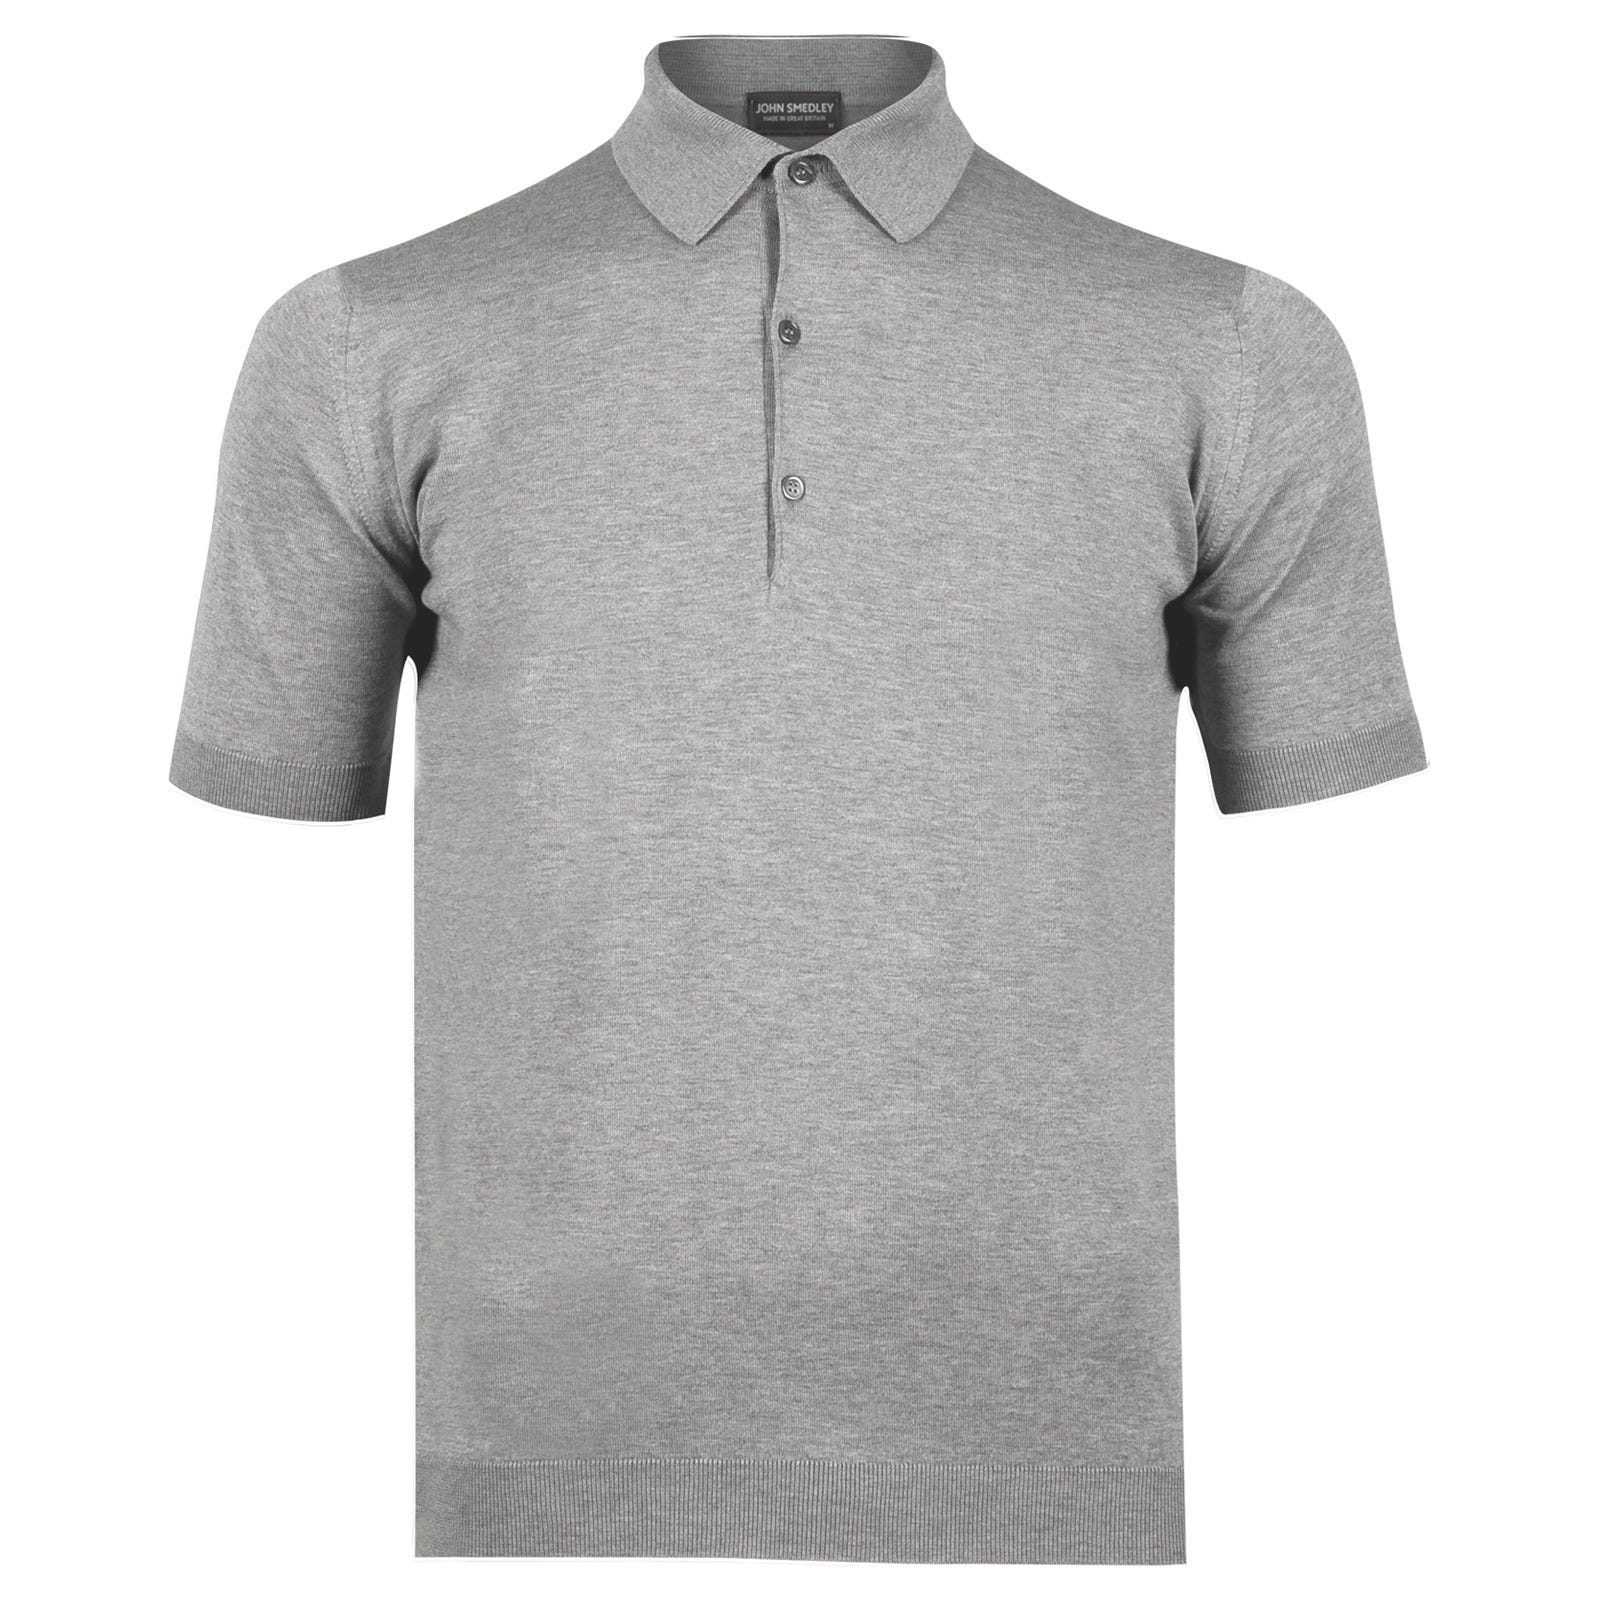 John Smedley adrian Sea Island Cotton Shirt in Silver-XXL